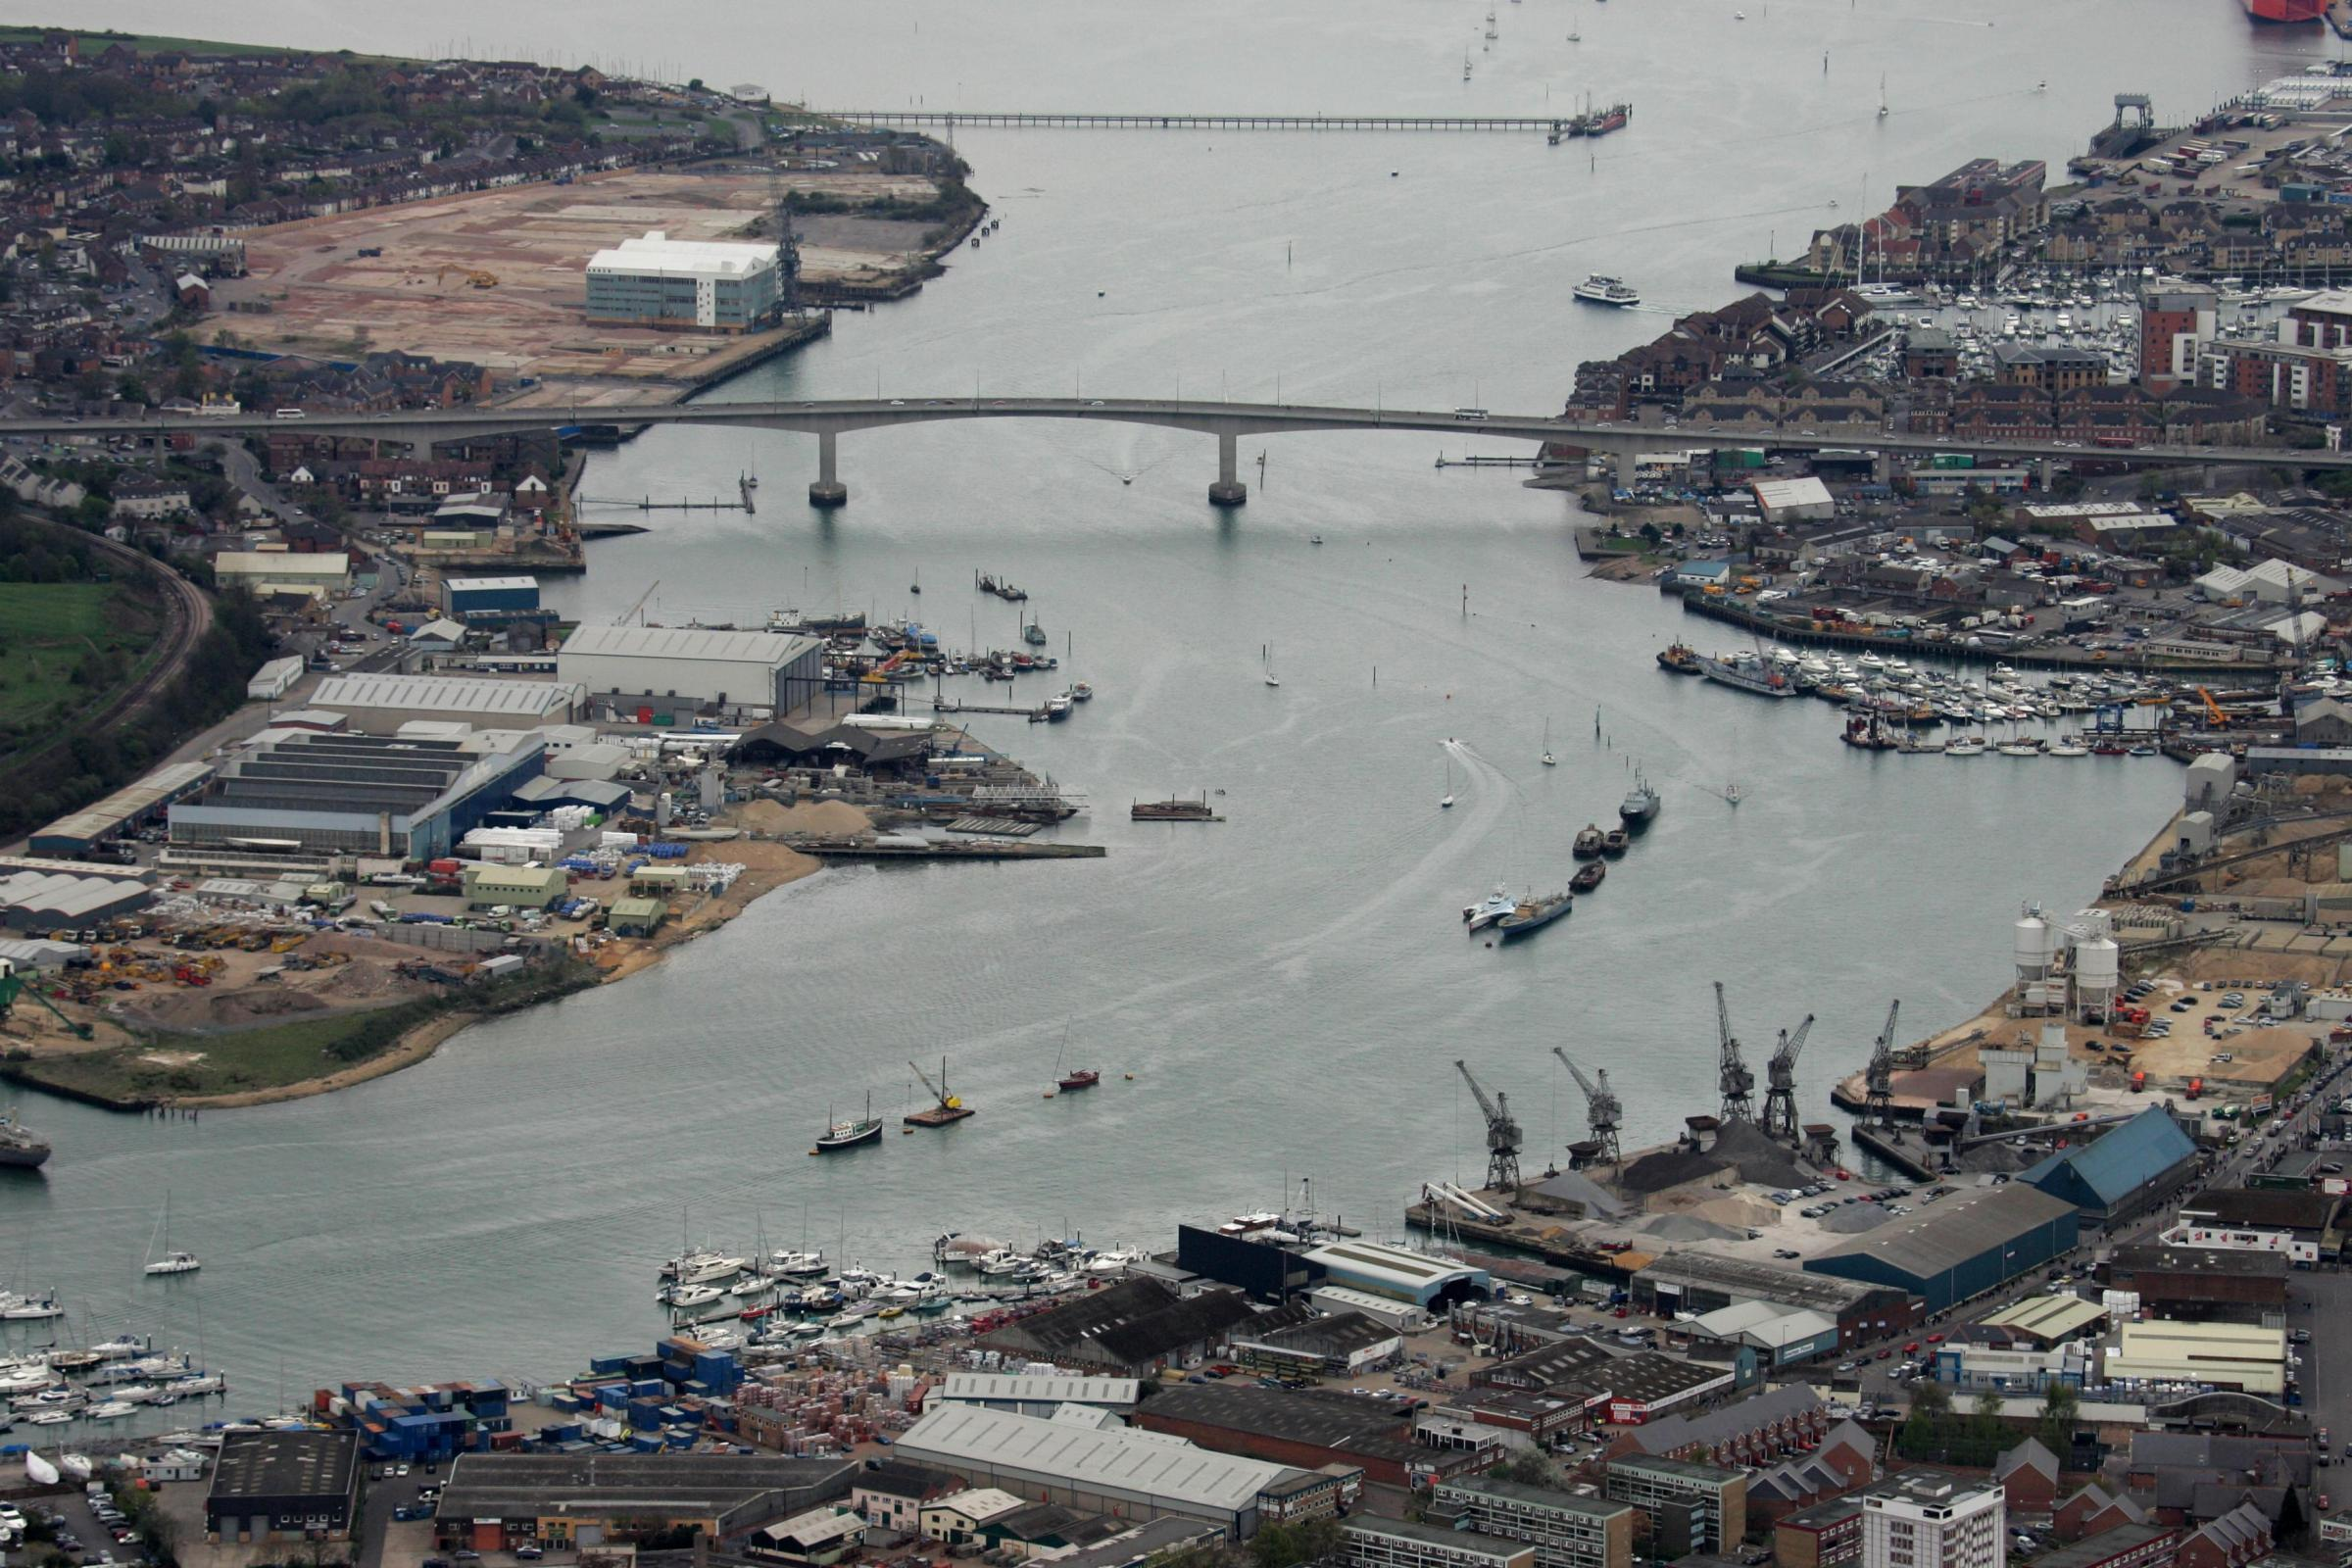 Aerial eye in the sky pics - Southampton - Itchen Bridge - Woolston.